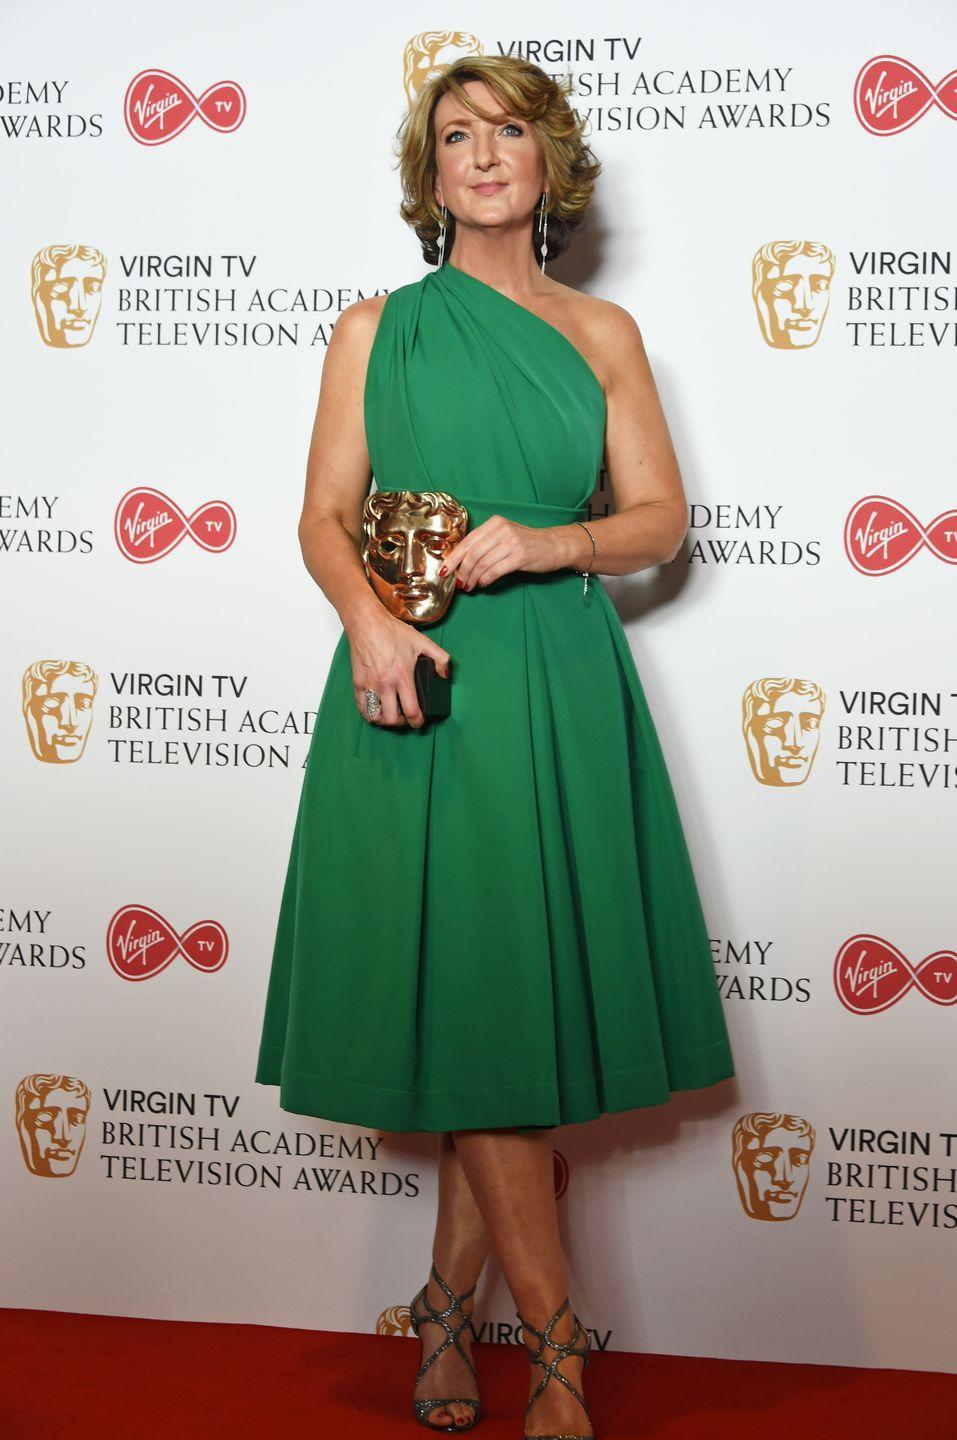 "<p><strong>Who is she? </strong>Victoria is a journalist best known for presenting Victoria Derbyshire on BBC 2 before its cancellation earlier this year. She won a Bafta for best TV news coverage in 2017 and is widely admired for her video diaries examining her treatment and recovery from breast cancer in 2015-16.</p><p><strong>What's she said about I'm A Celeb? </strong>""This is a mad thrill adventure that I want to take part in, because of cancer, I know more than lots of people, life is short. I am now saying 'yes' to stuff I wouldn't have done previously. And if I don't do my boys proud, I will never live it down,"" she said.</p>"